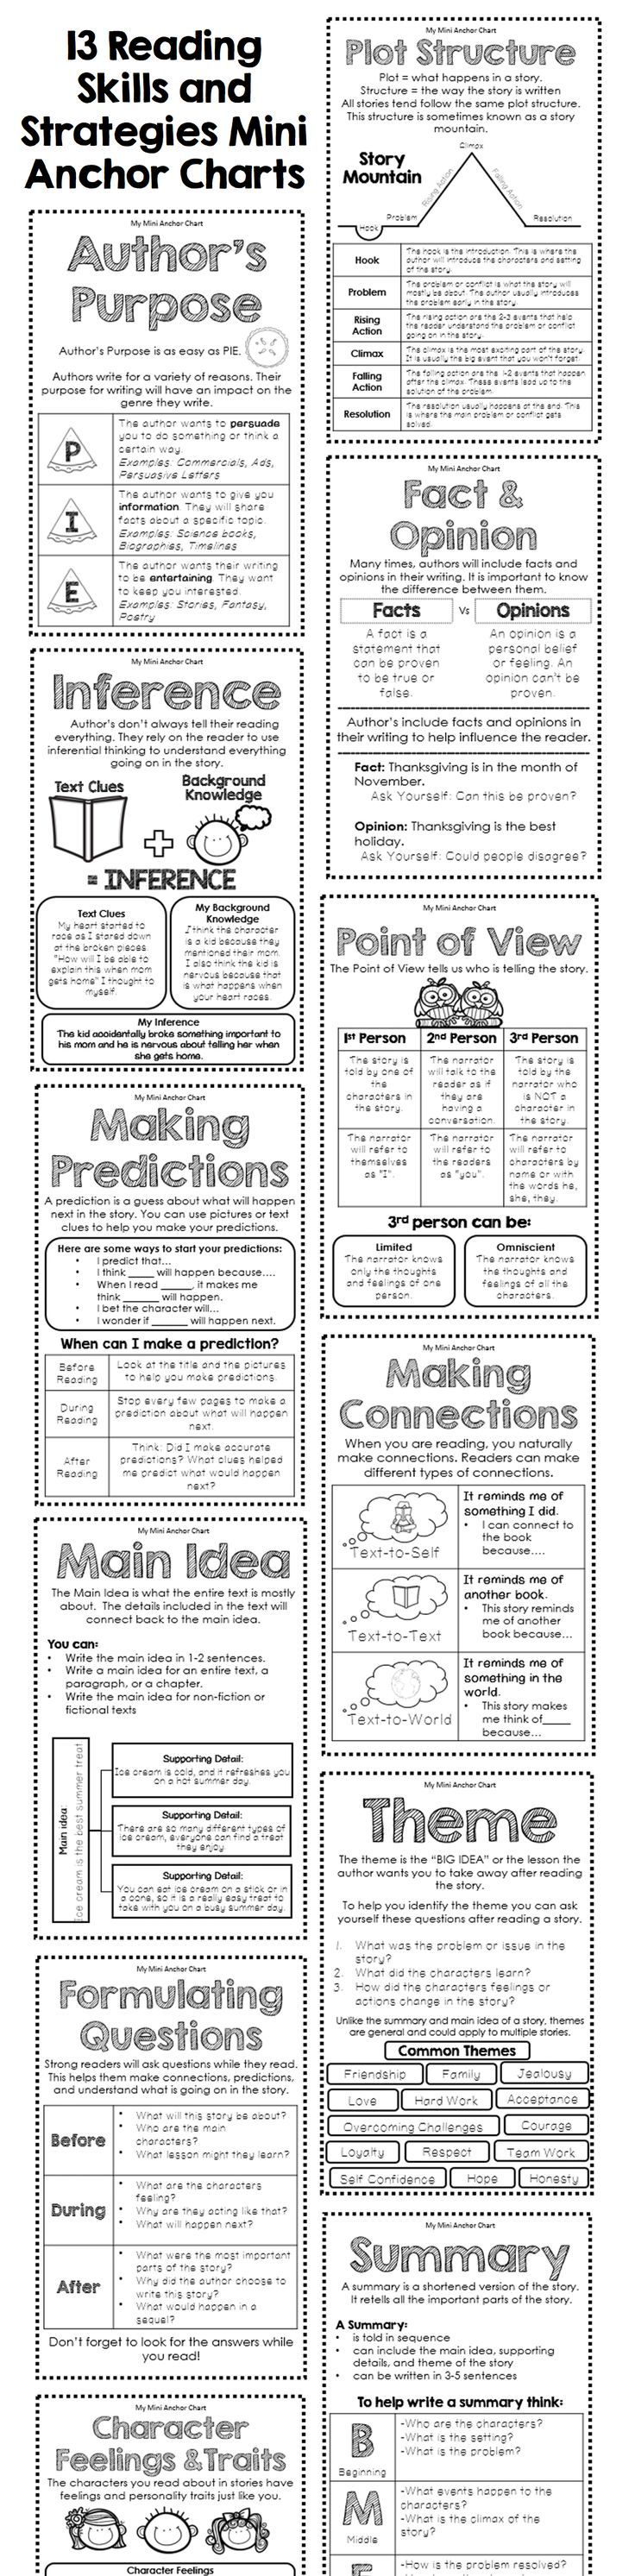 These mini anchor charts are a great addition to your interactive reader's notebook. Each anchor chart gives an explanation of a reading strategy or skill. Students can glue them in their journal for quick and easy reference while they are independently reading.